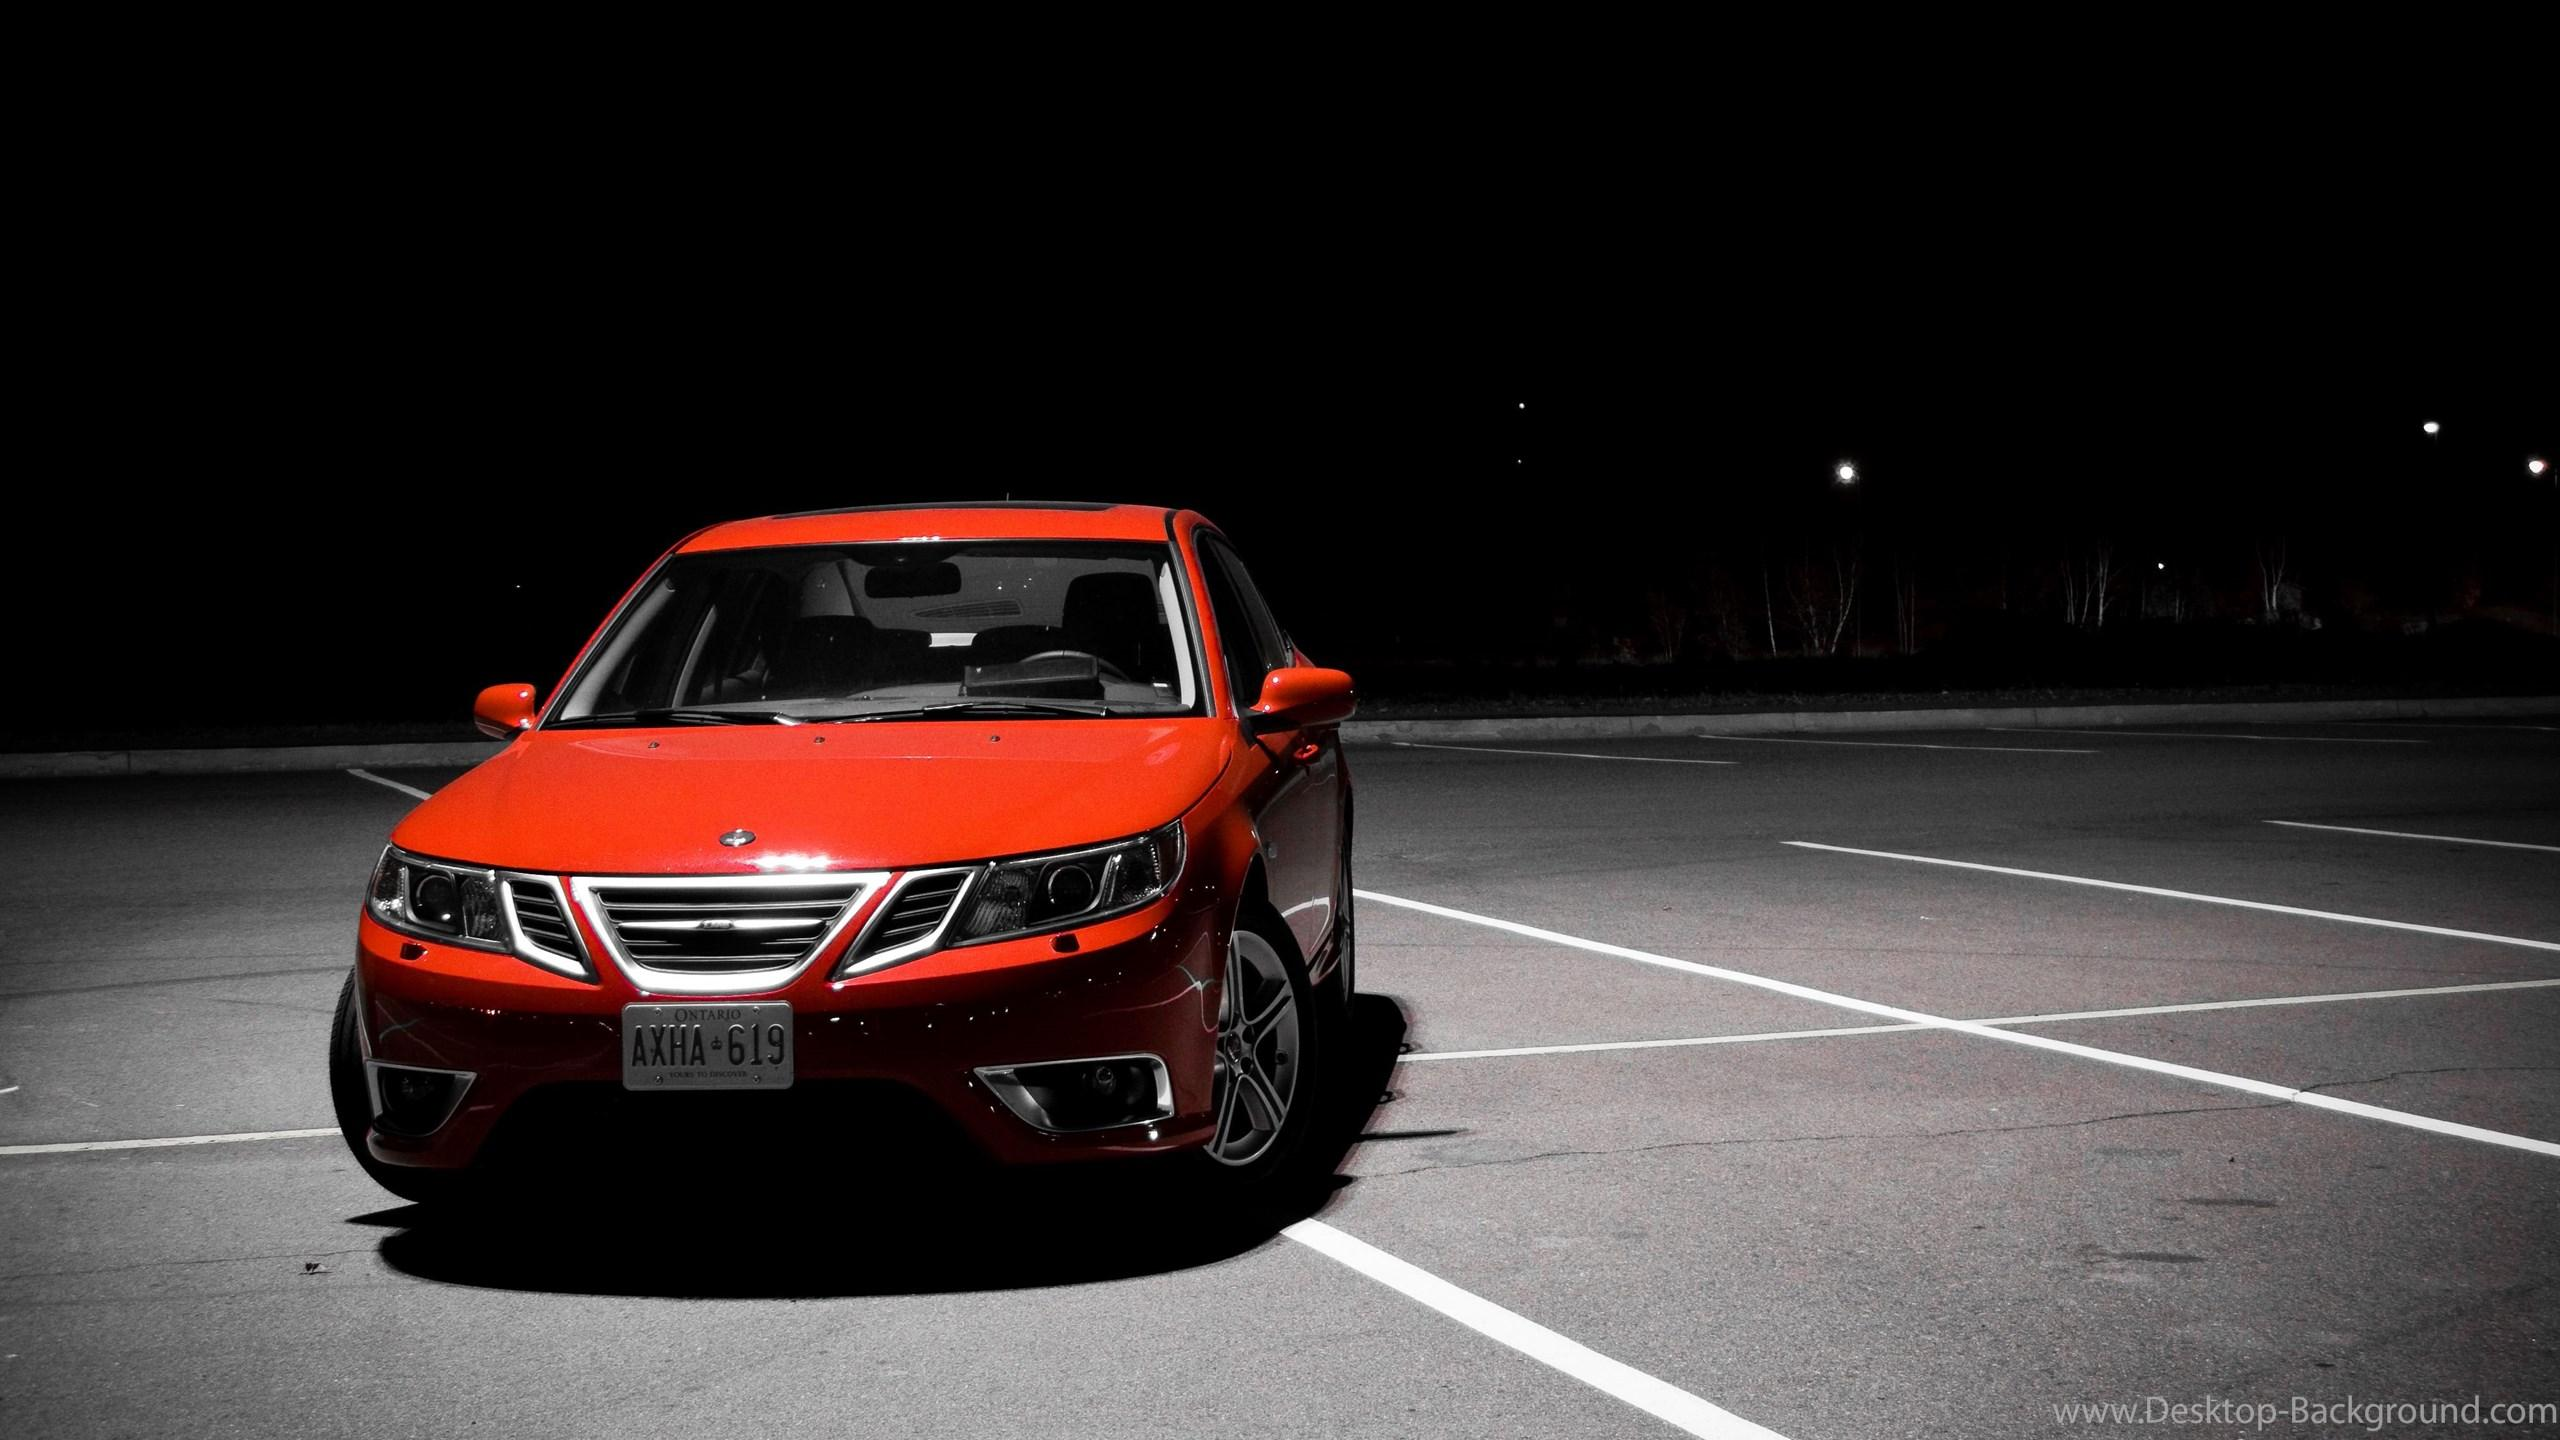 Saab 9 3 HQ Wallpapers Desktop Backgrounds